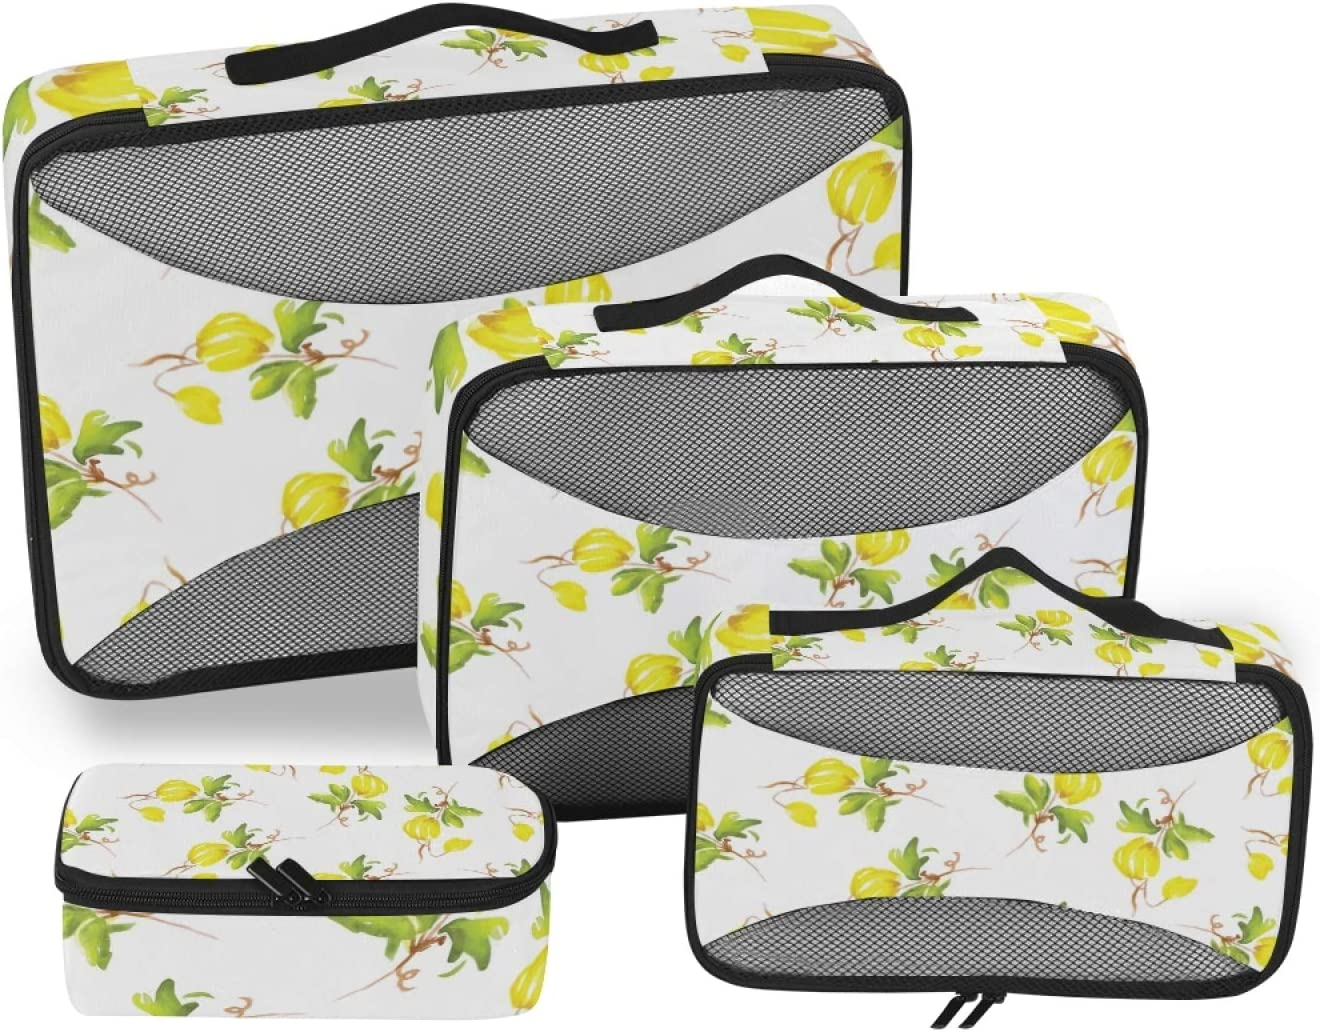 Yellow Flowers Popularity Packing Cubes 4-Pcs Travel online shopping Organizer Accessories